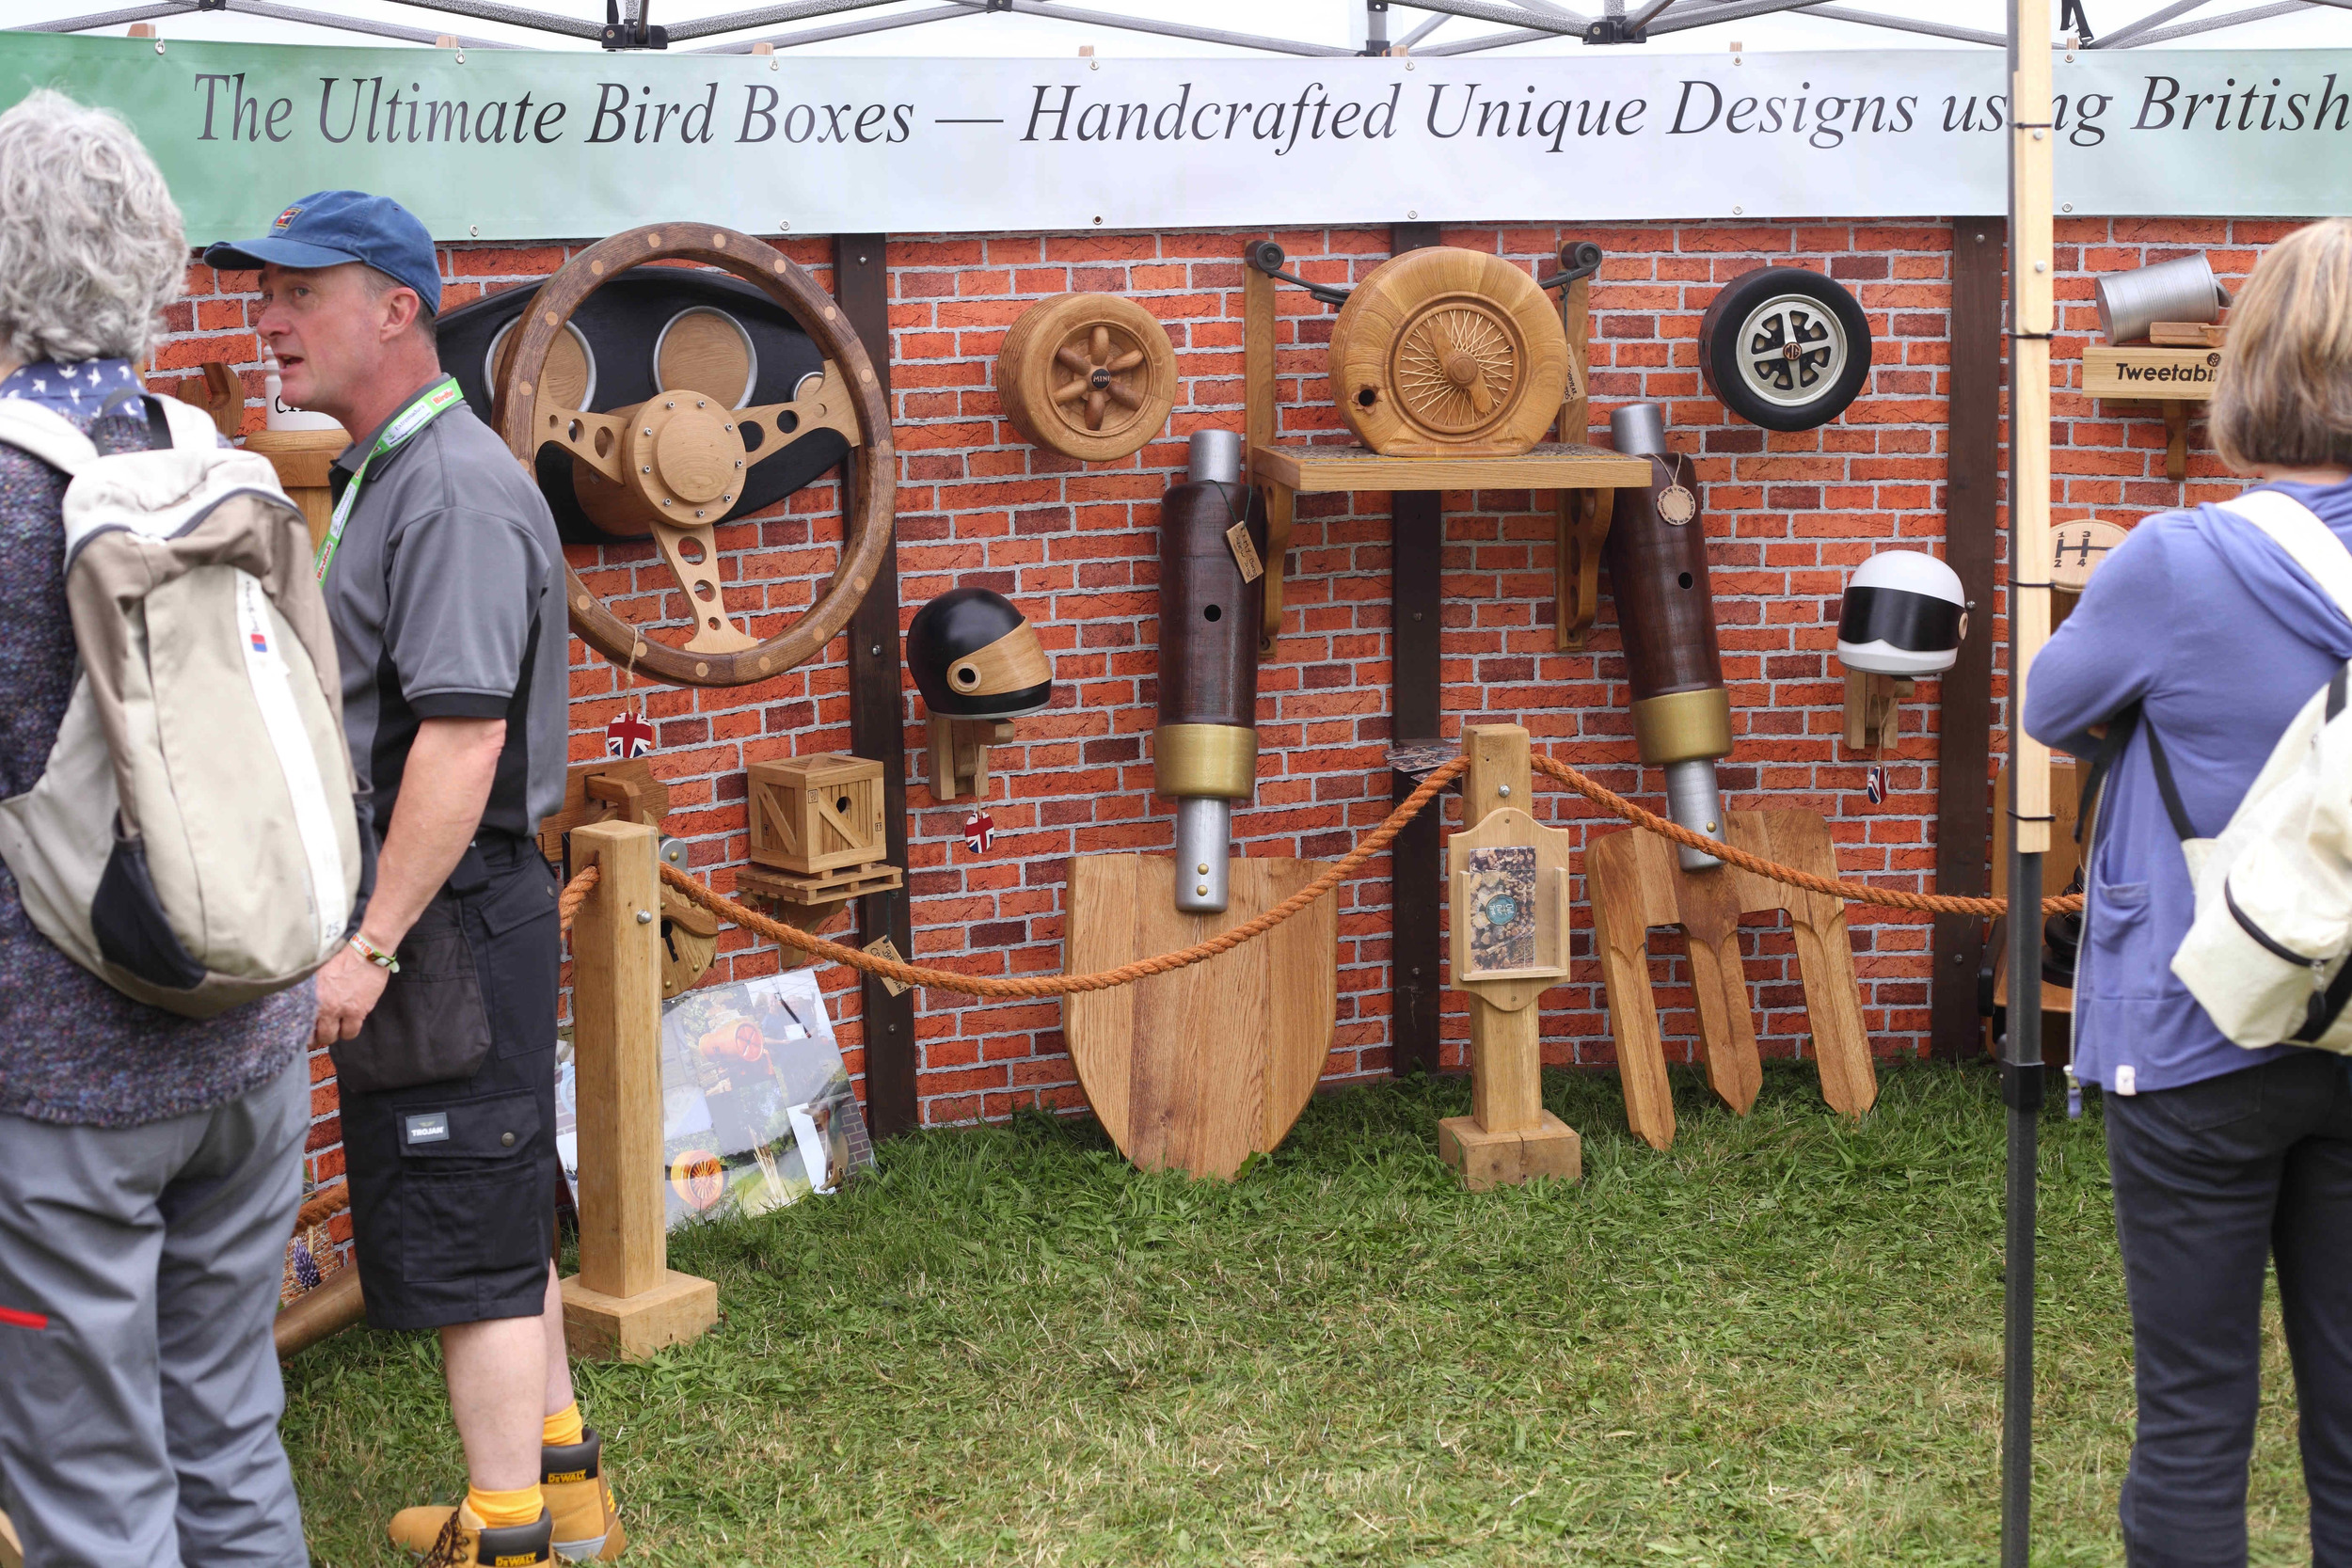 Need a ludicrous bird box for the back yard? You'll find it at Birdfair.